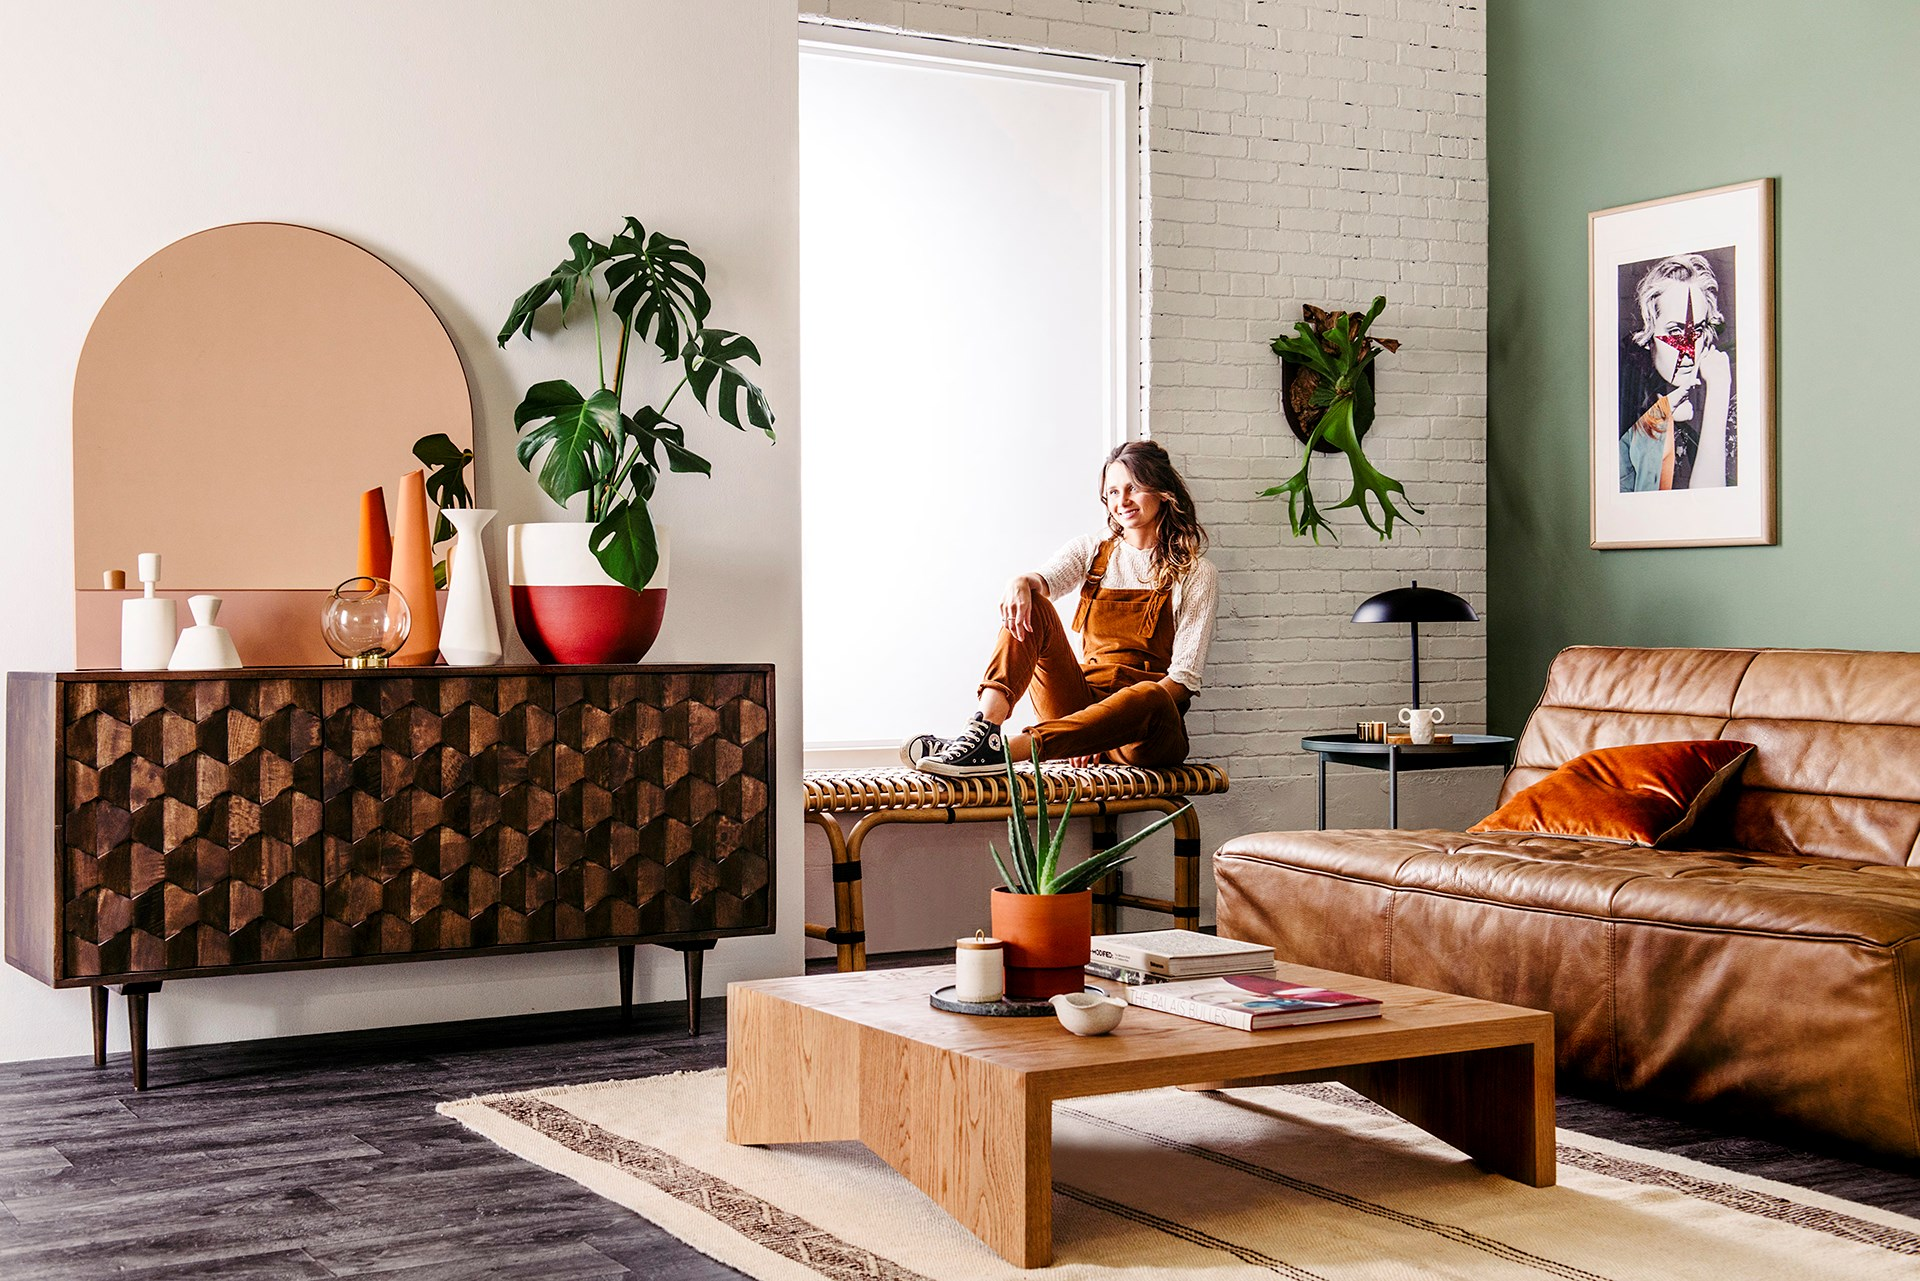 Stylist Tahnee Carroll brings her dream living room to life, creating a cool mid-century retro look with tan leather, hints of timber and earthy terracotta tones, freshened up with vibrant indoor greenery. [> Shop the look here.](http://www.homestolove.com.au/stylist-tahnee-carroll-creates-her-dream-living-room-3555) Photo: Lauren Bamford / real living